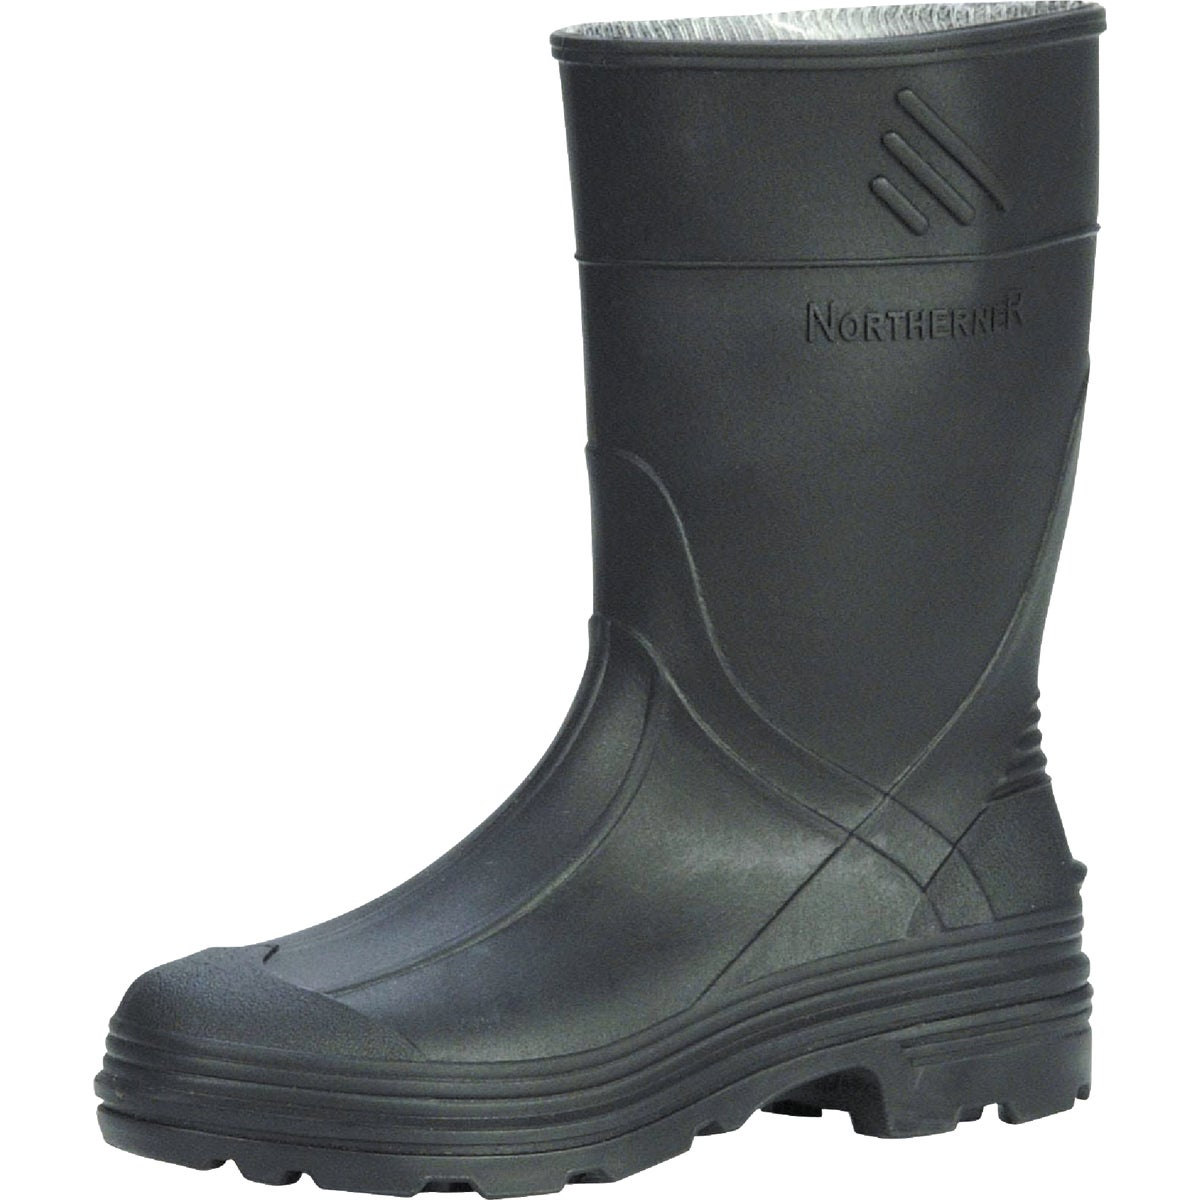 SZ2 YTH BLK PVC RAINBOOT - 76002-2 by Norcross Safety Prod